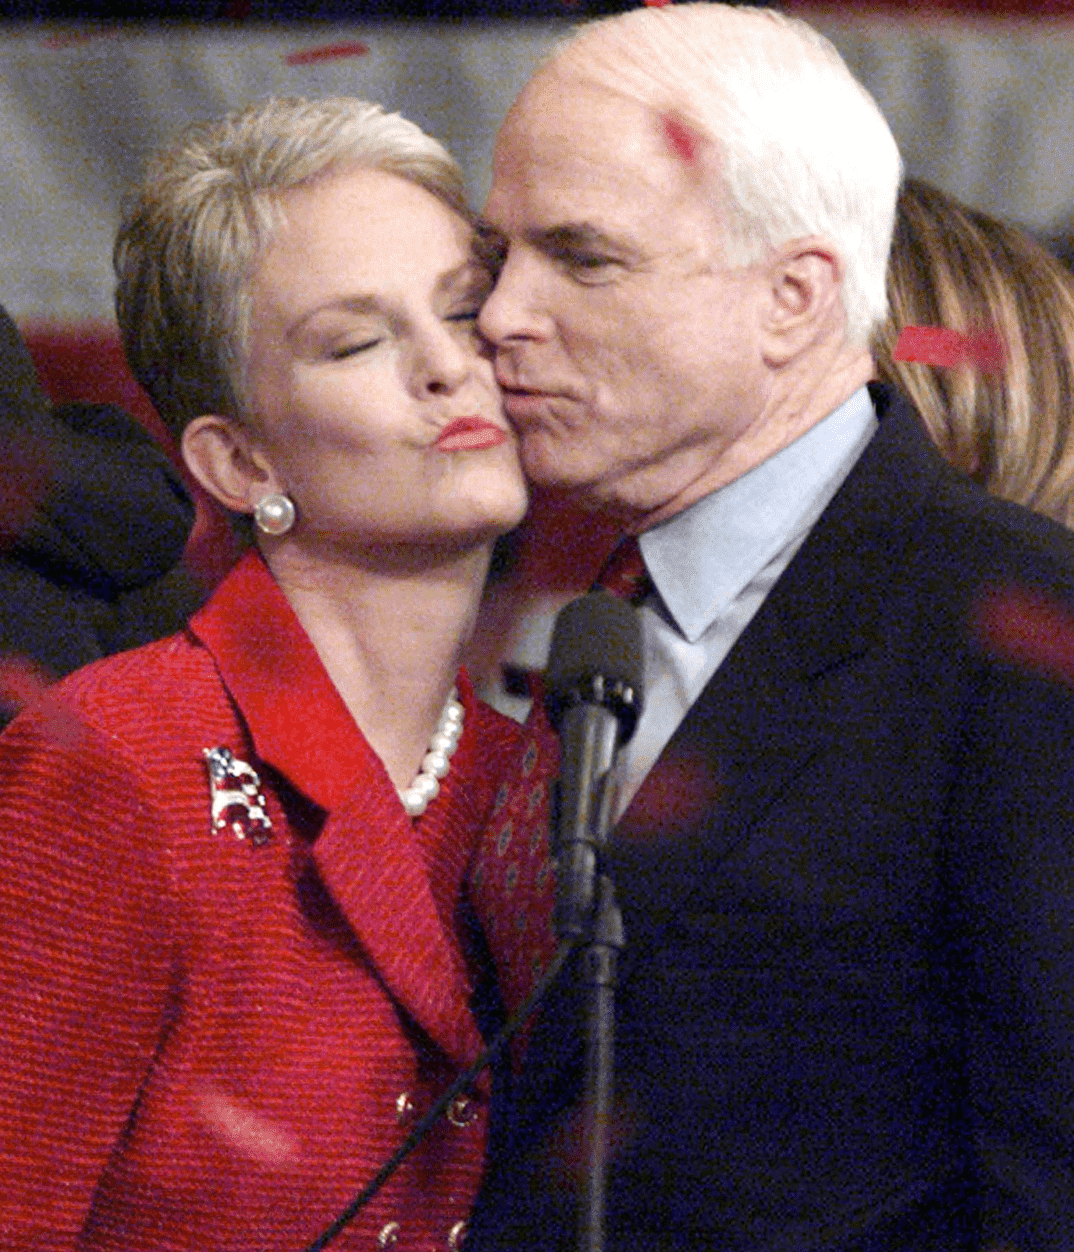 John McCain kisses his wife Cindy during a victory celebration. | Source: Getty Images